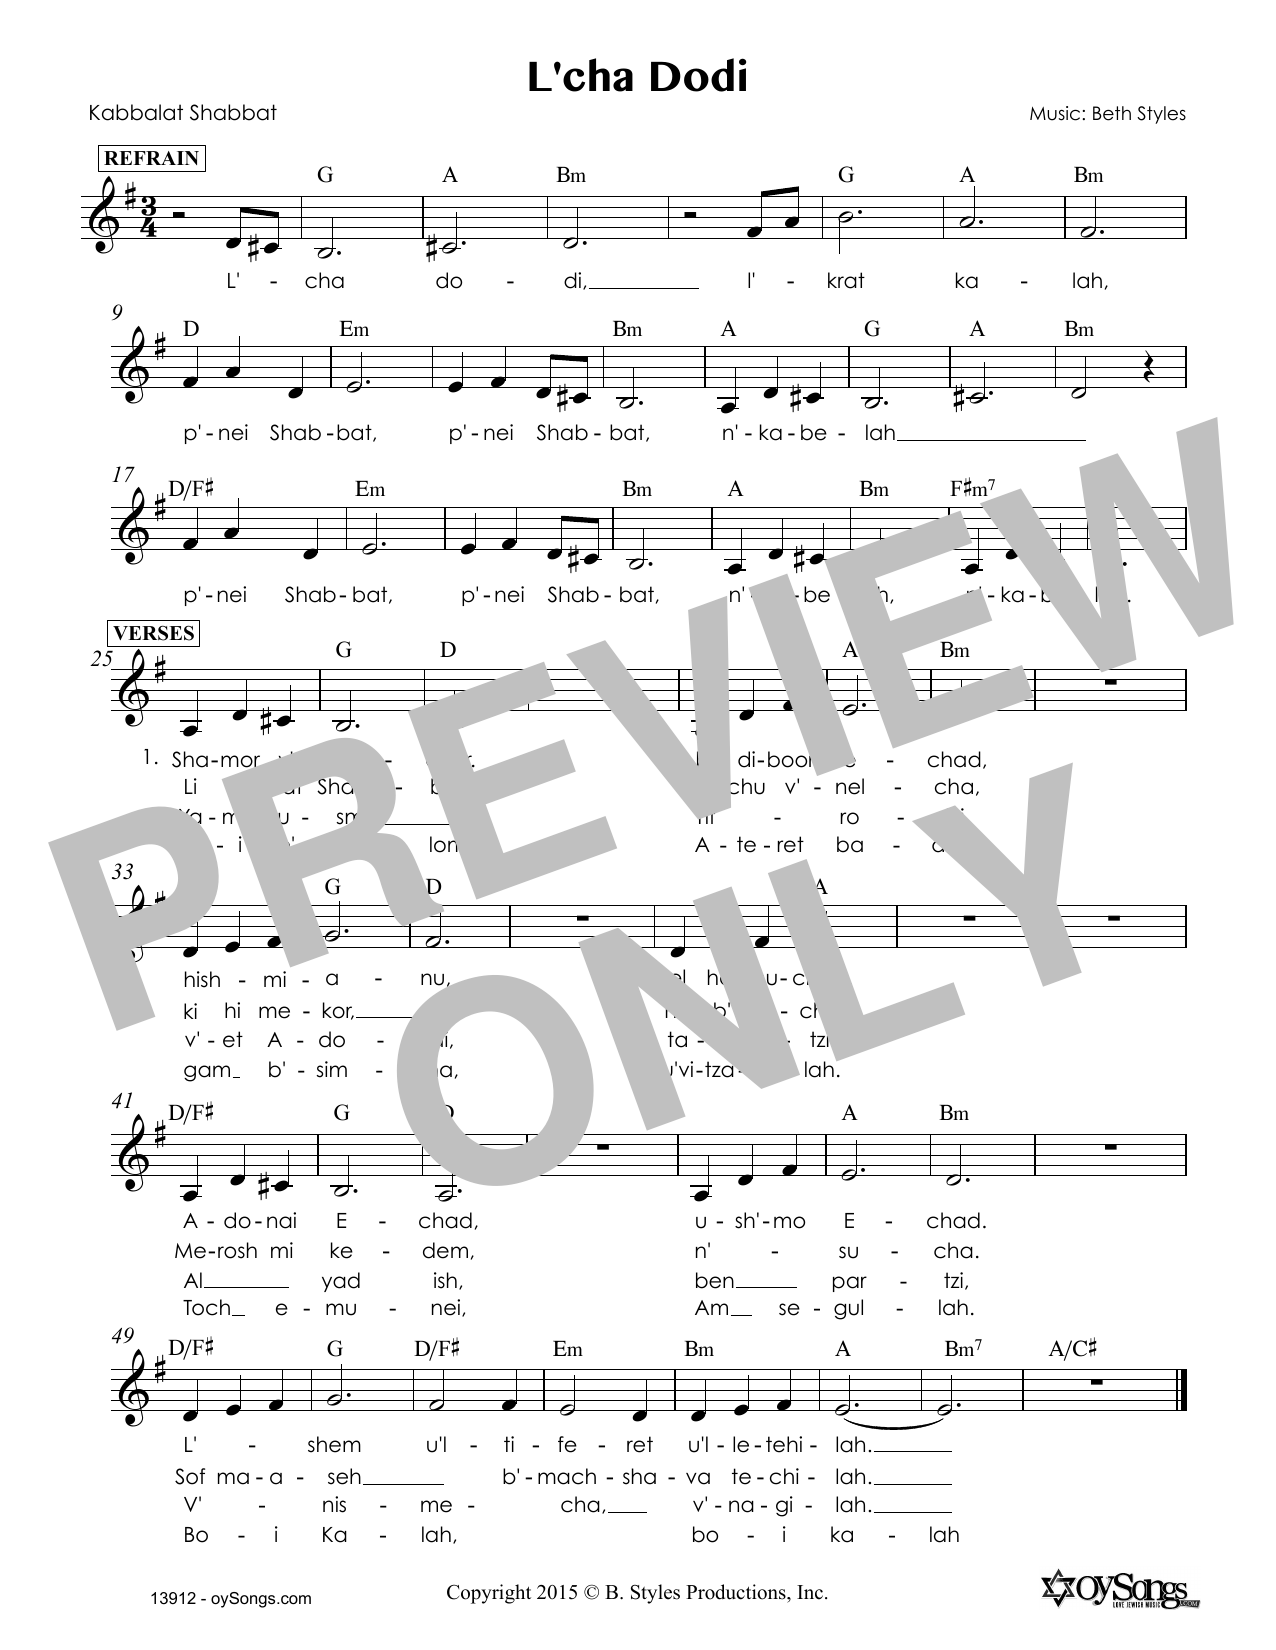 Beth Styles L'cha Dodi sheet music notes and chords. Download Printable PDF.